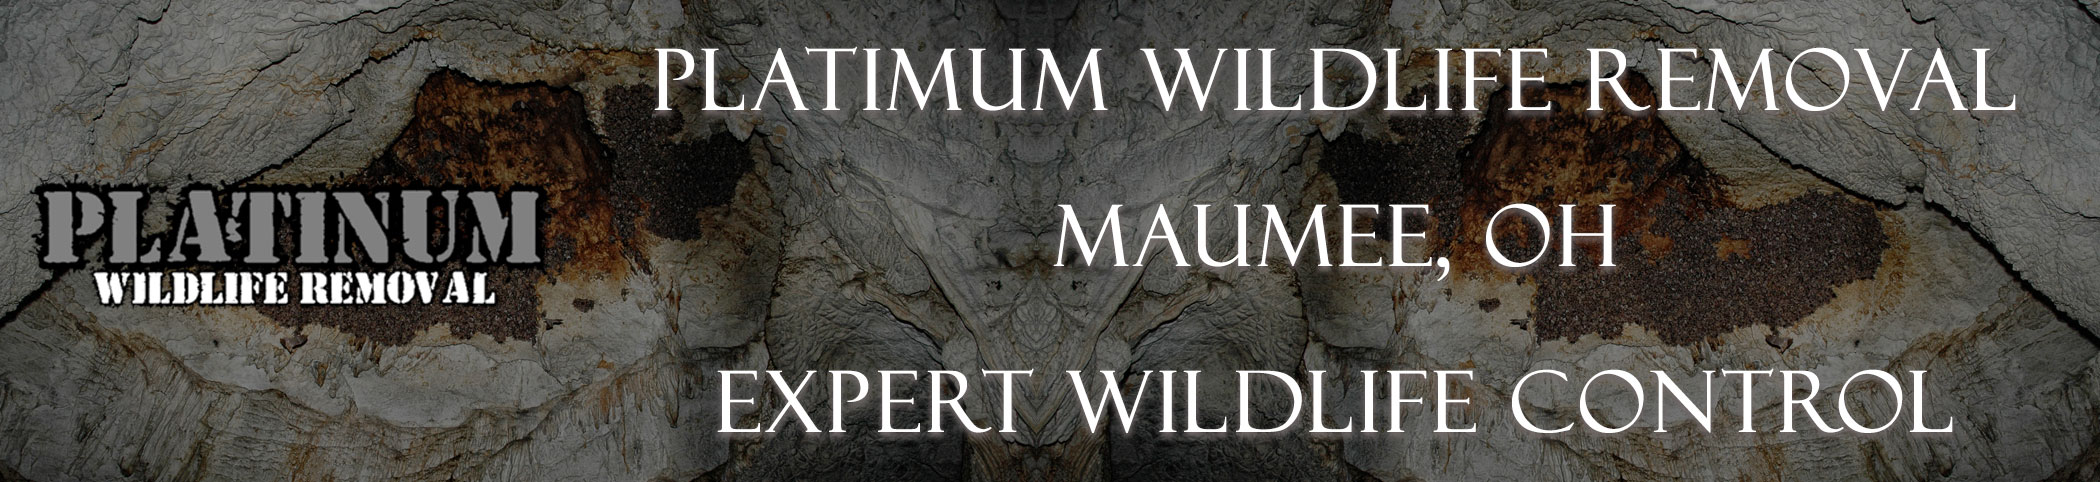 Platinum-Wildlife-Removal_Maumee_OH